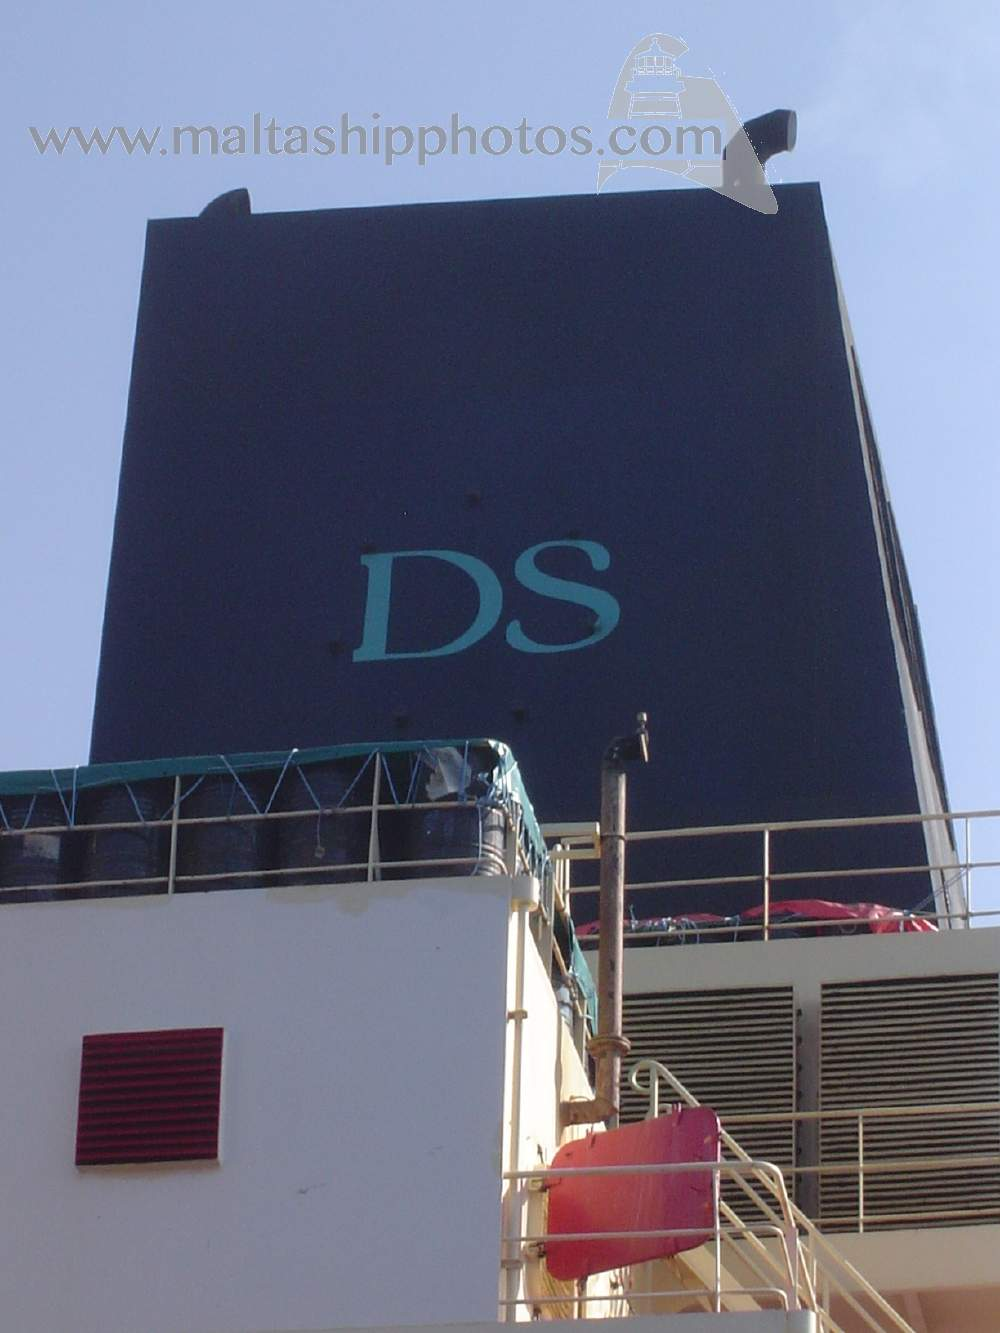 DS Tankers GmbH & Co KG, Germany